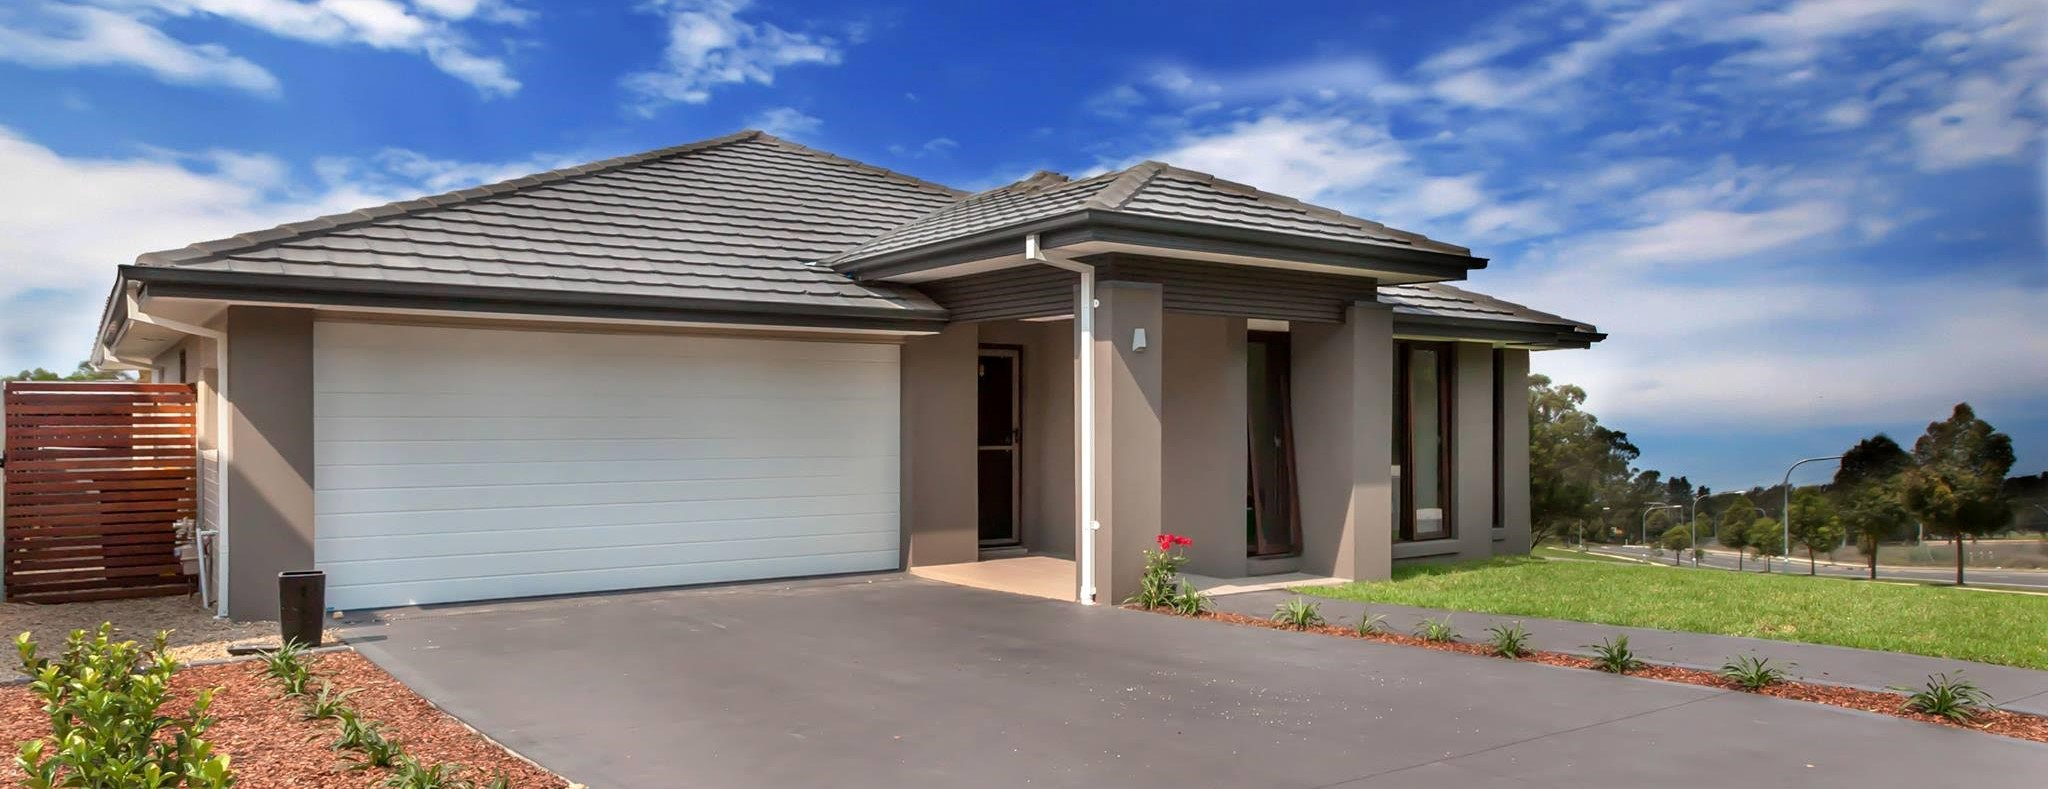 For Sale 44 Liddiard Street Ropes Crossing NSW 2760